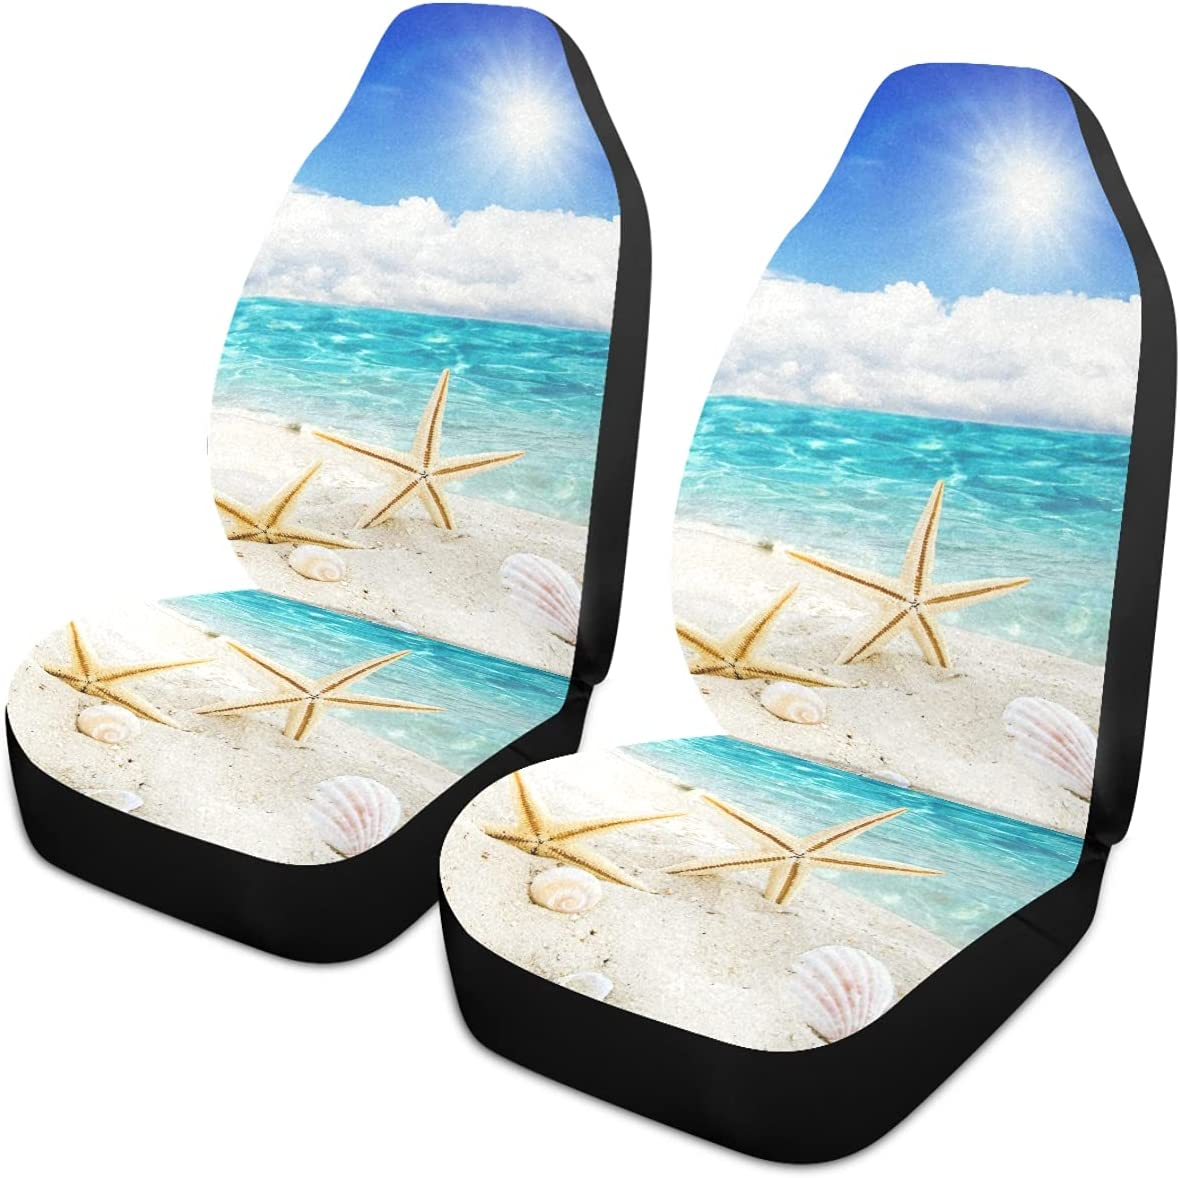 Oarencol Summer Starfish Seashell In a popularity Car Max 59% OFF Seat Bl Sandy Beach Covers